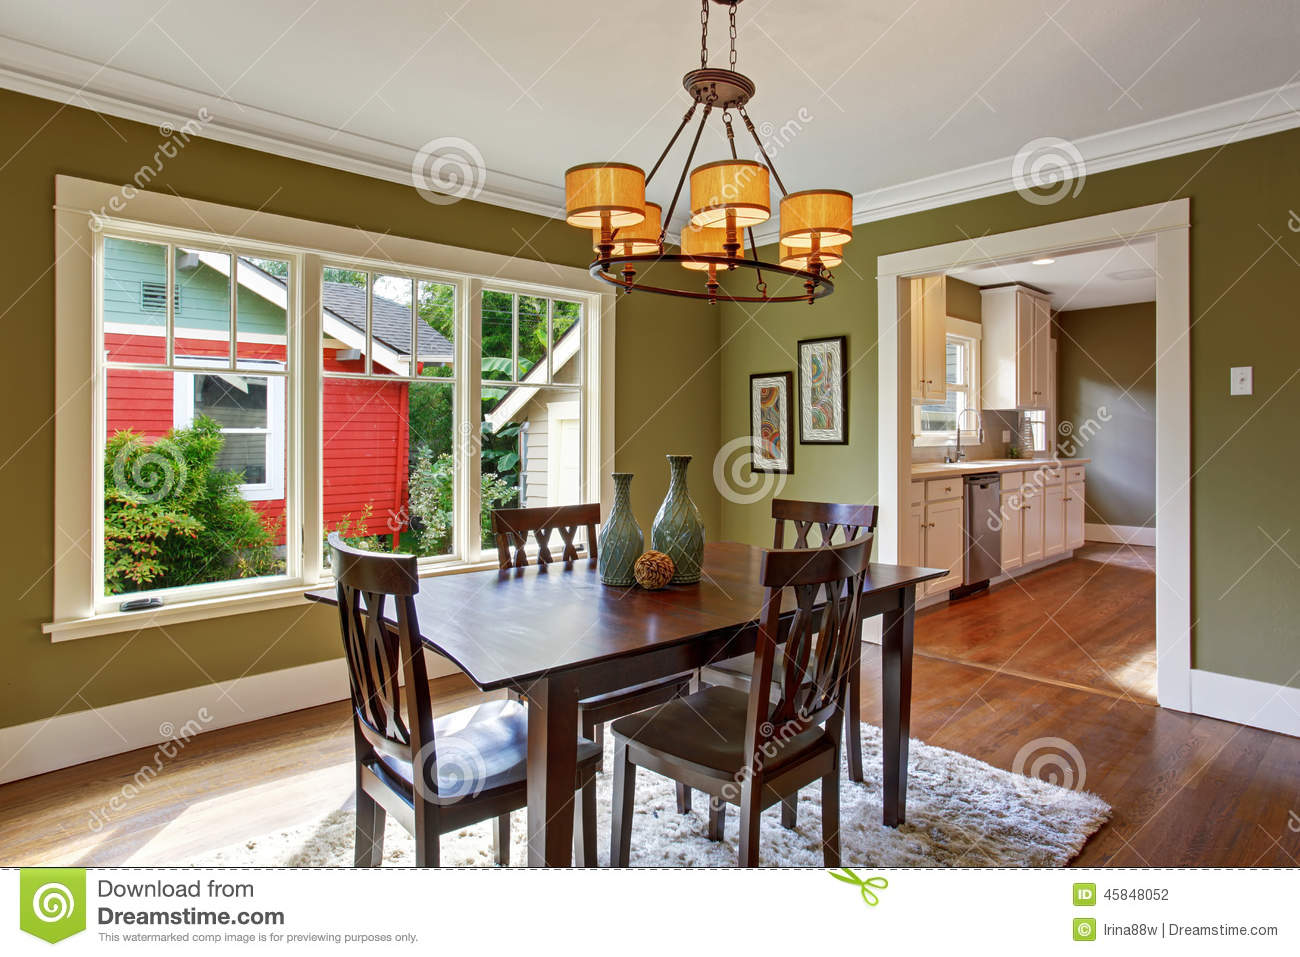 2 Tone Kitchen Cabinets Dining Room With Olive Tone Walls Stock Photo Image